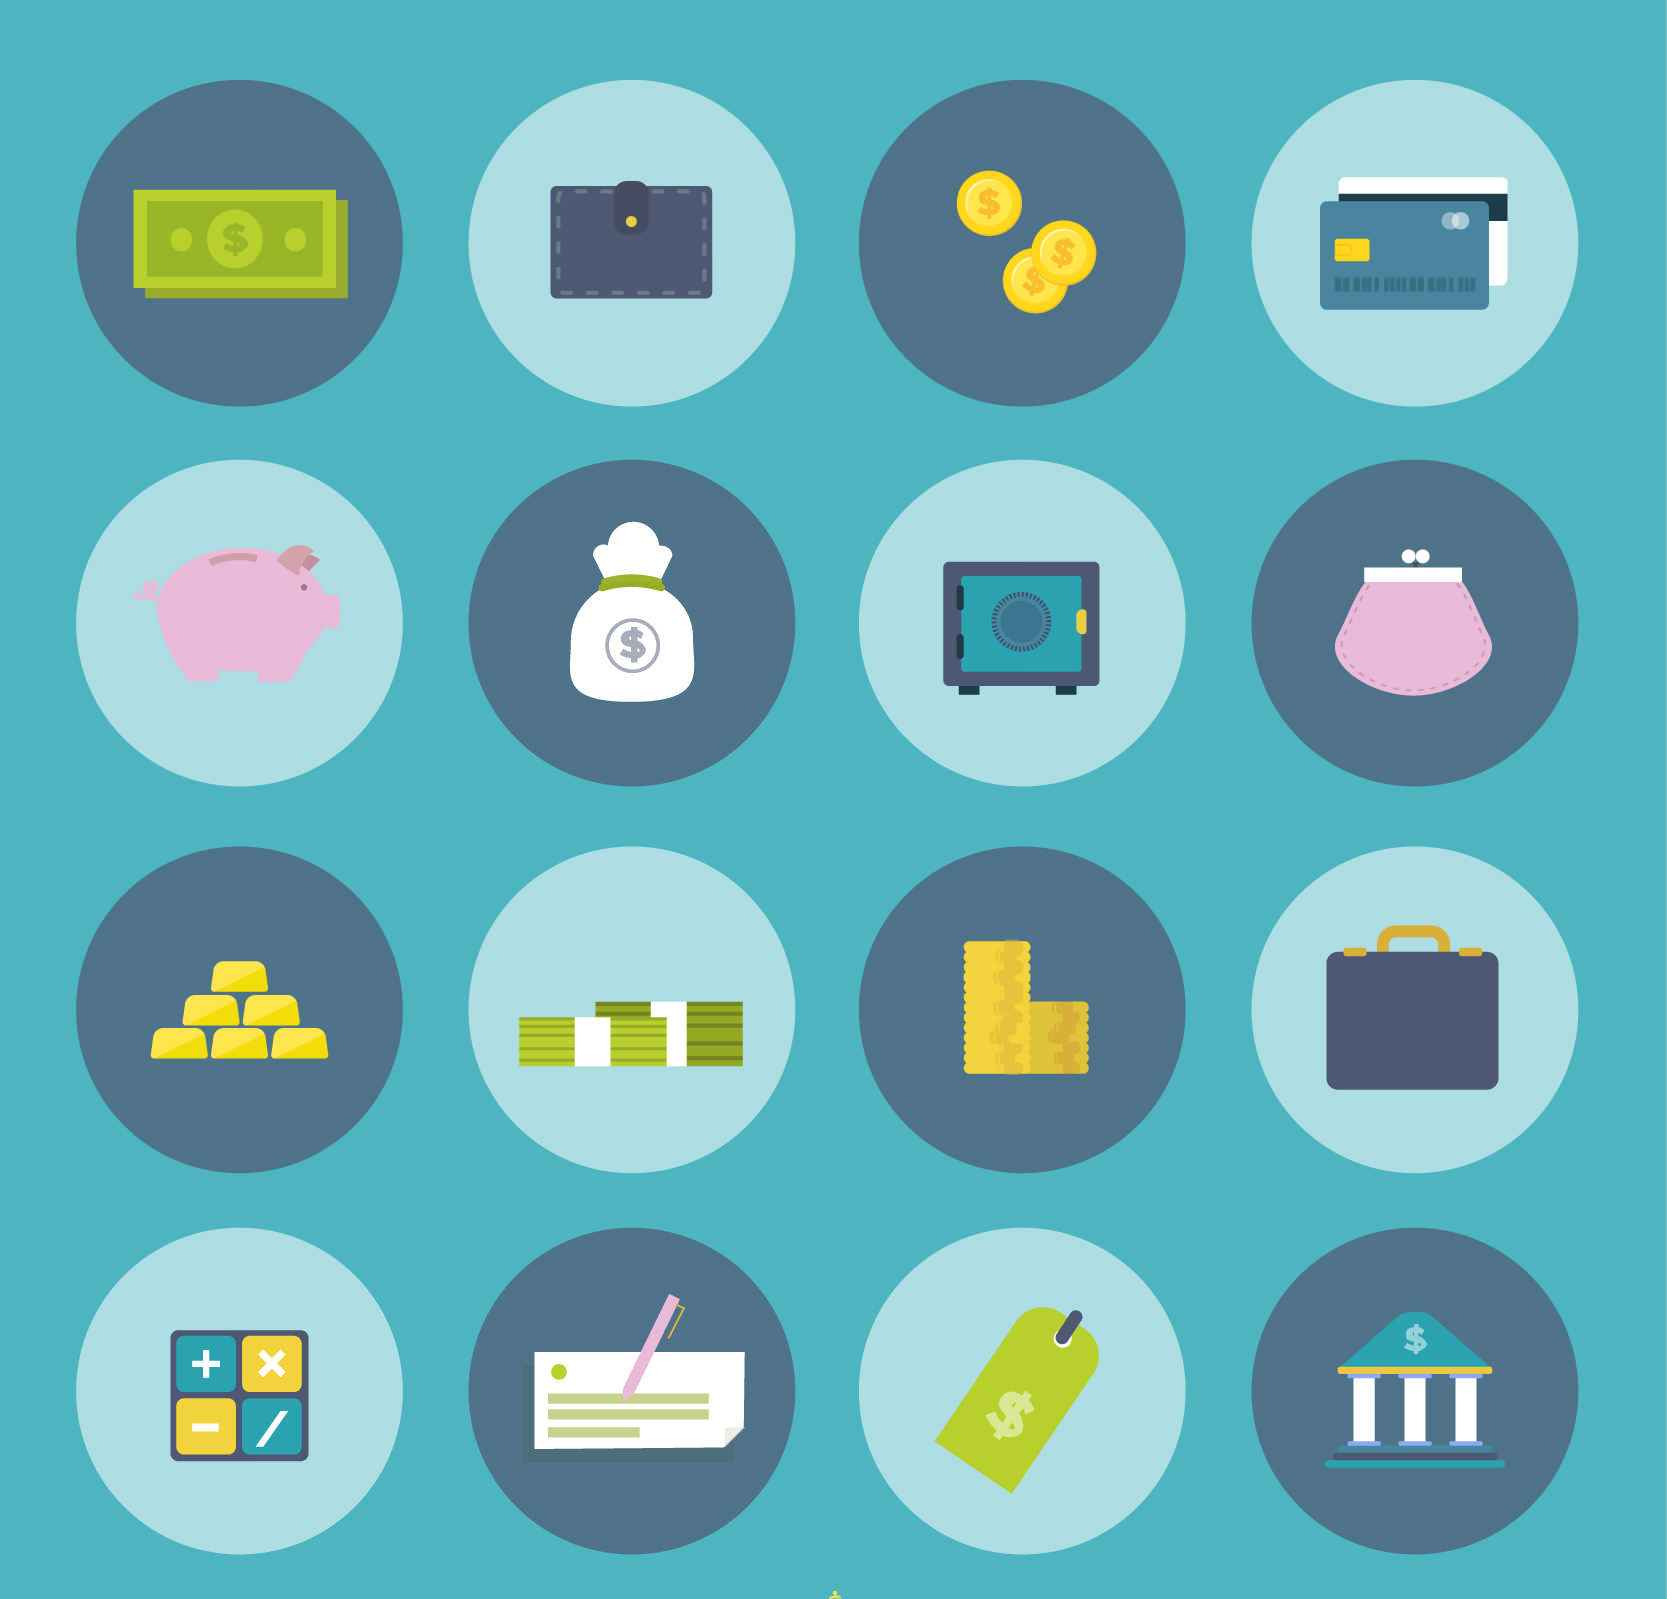 Rounded Flat Financial Icons